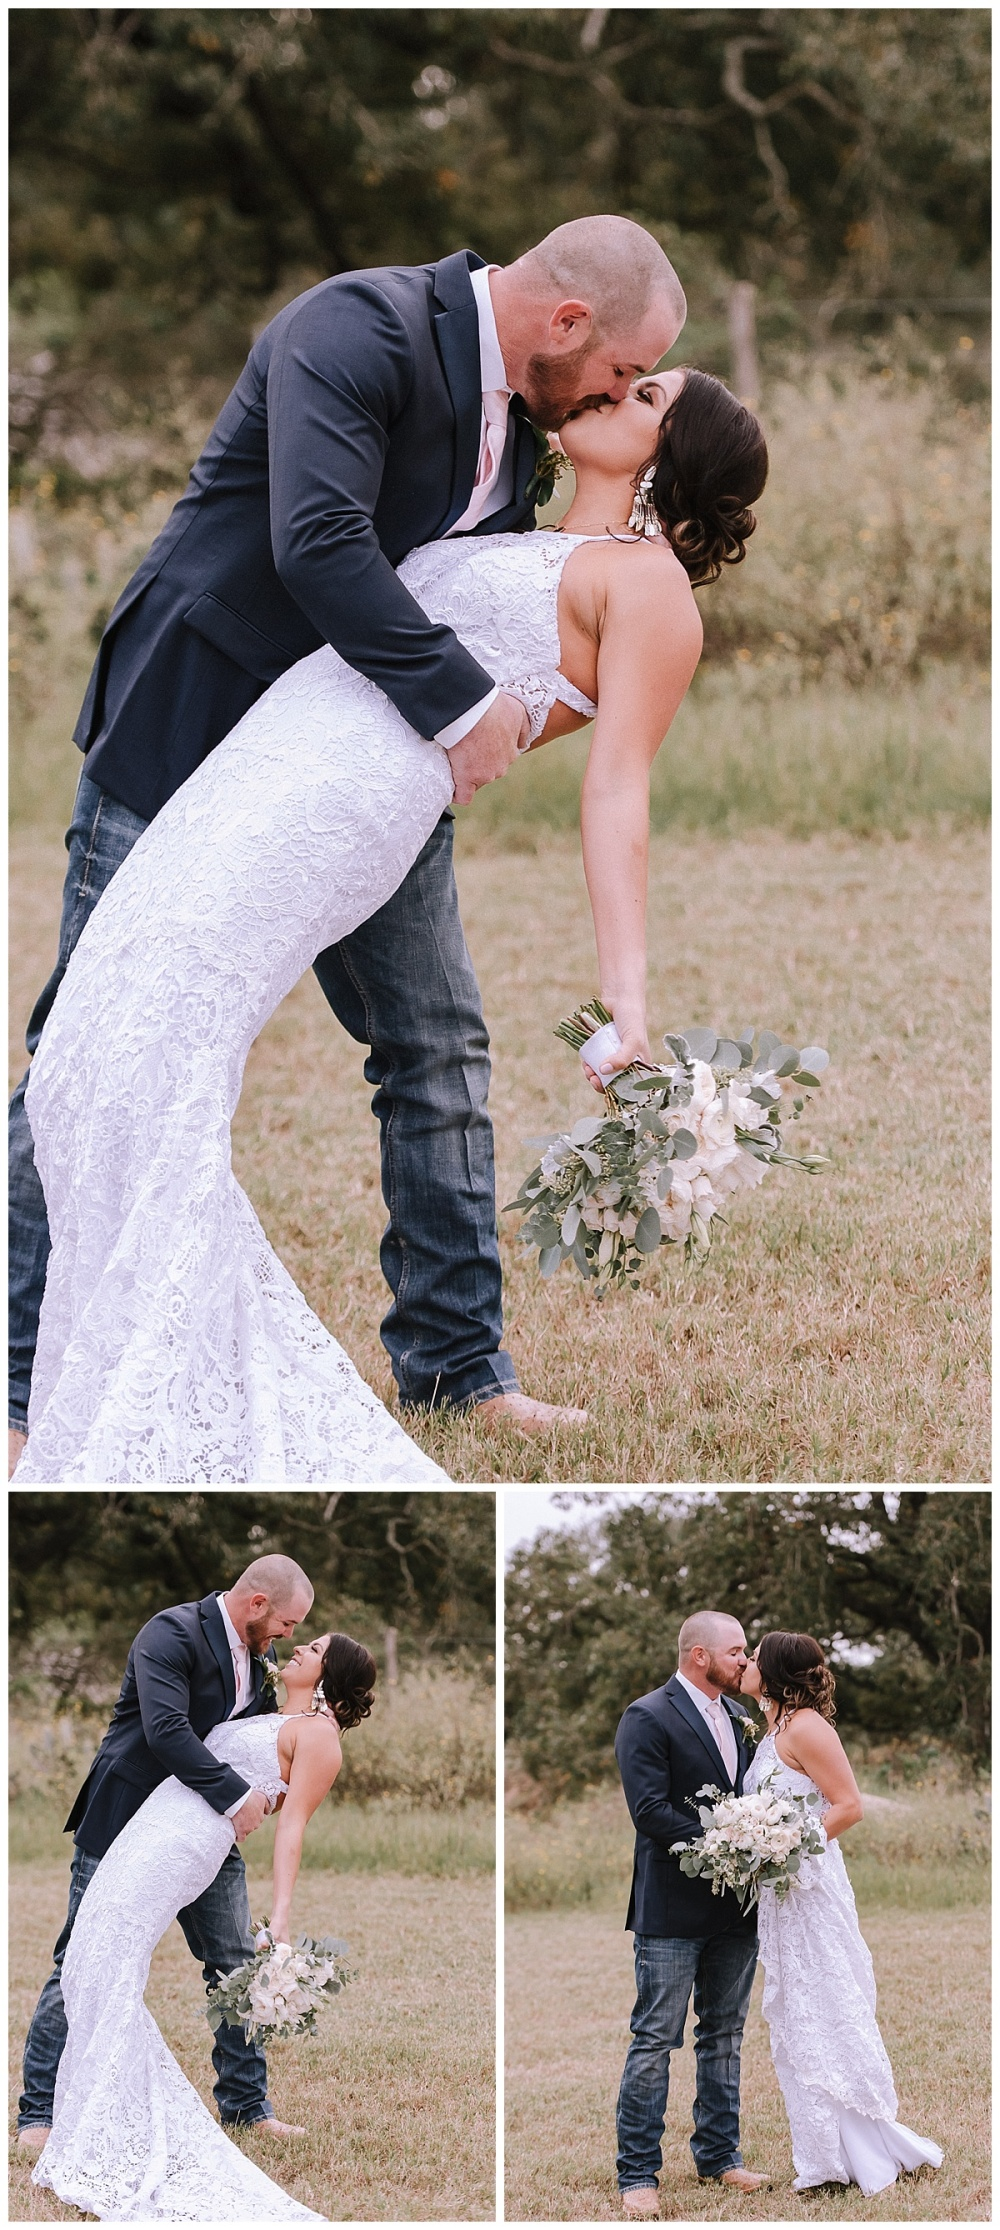 South-Texas-Wedding-Photographer-Rose-Gold-and-Navy-Theme-LaVernia-Bride-Groom-Carly-Barton-Photography_0073